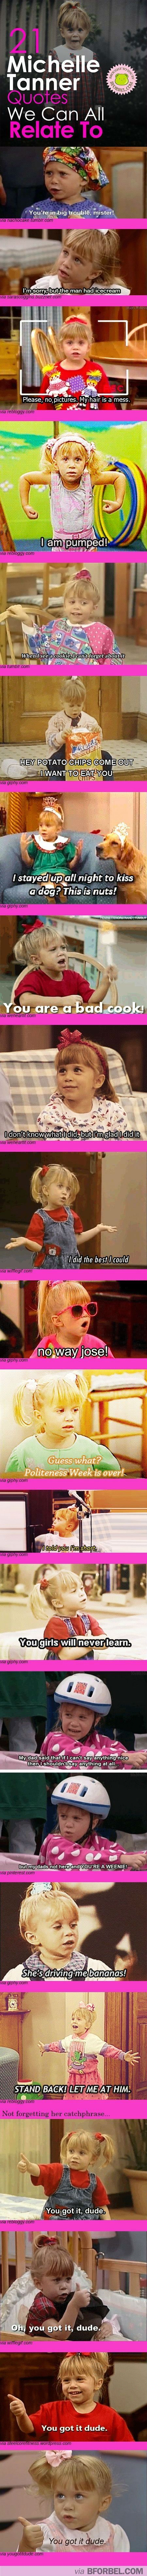 21 Michelle Tanner Quotes We Can All Relate To